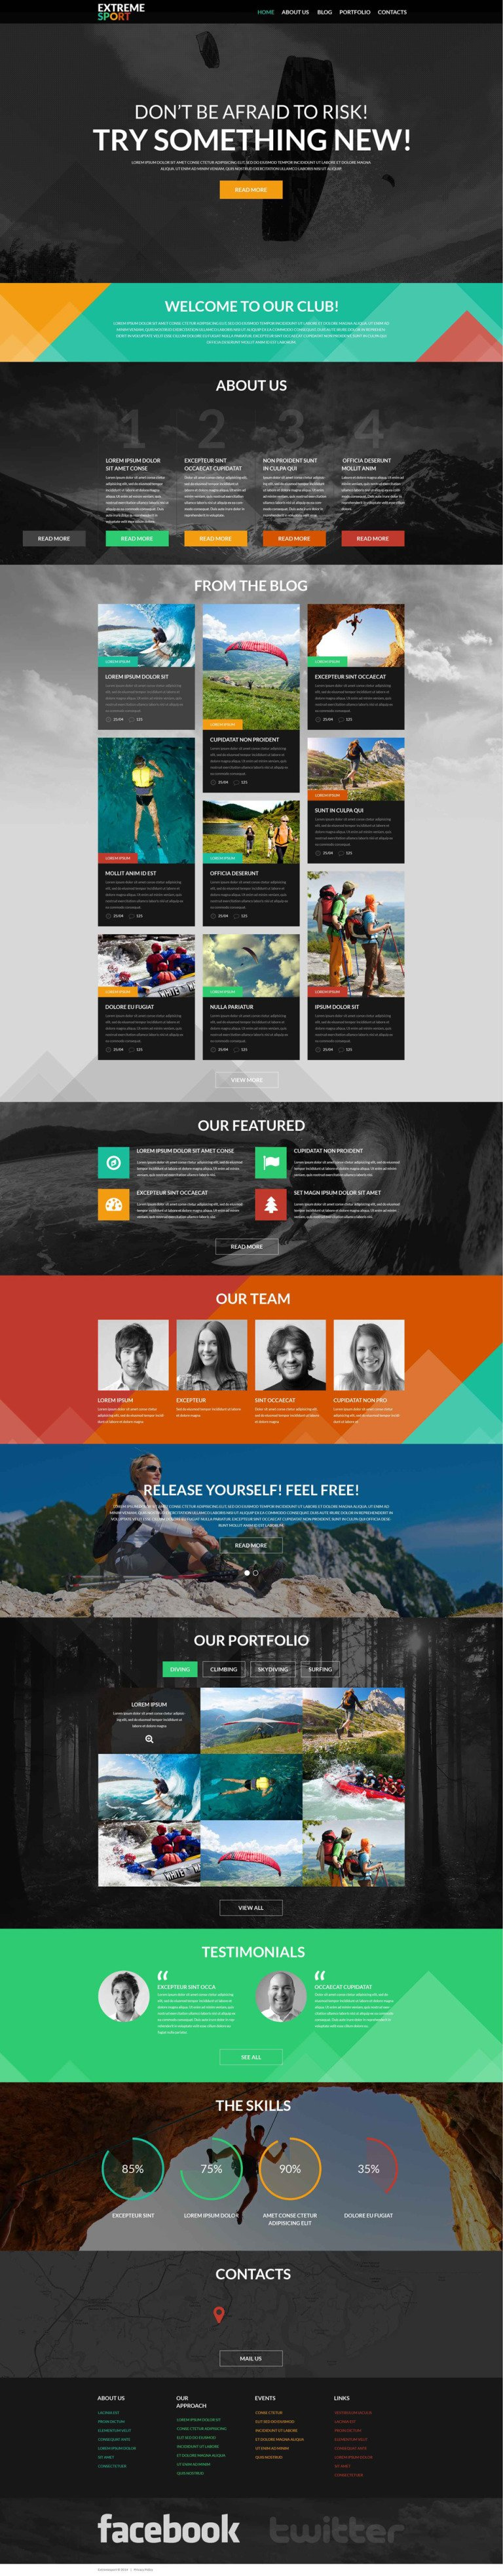 Active Sports WordPress Theme New Screenshots BIG